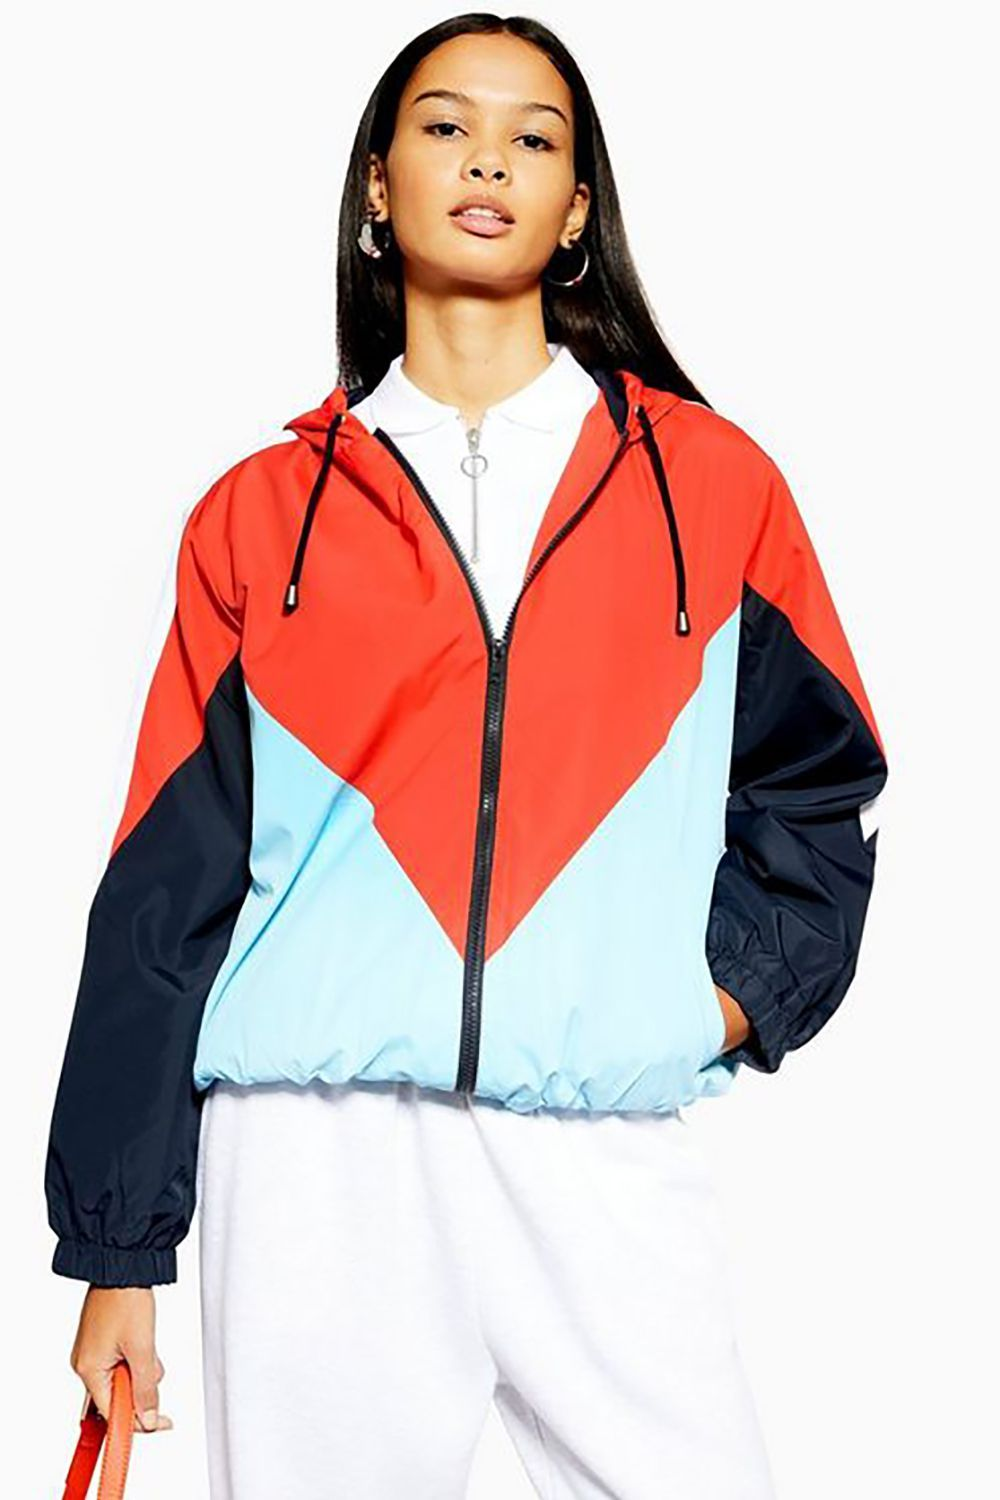 Color Pop Topshop $75.00 SHOP IT When the hair-flowing-in-the-wind is back (not the I-can't-feel-my-face-wind) grab this colorblocked windbreaker for a sportier look.